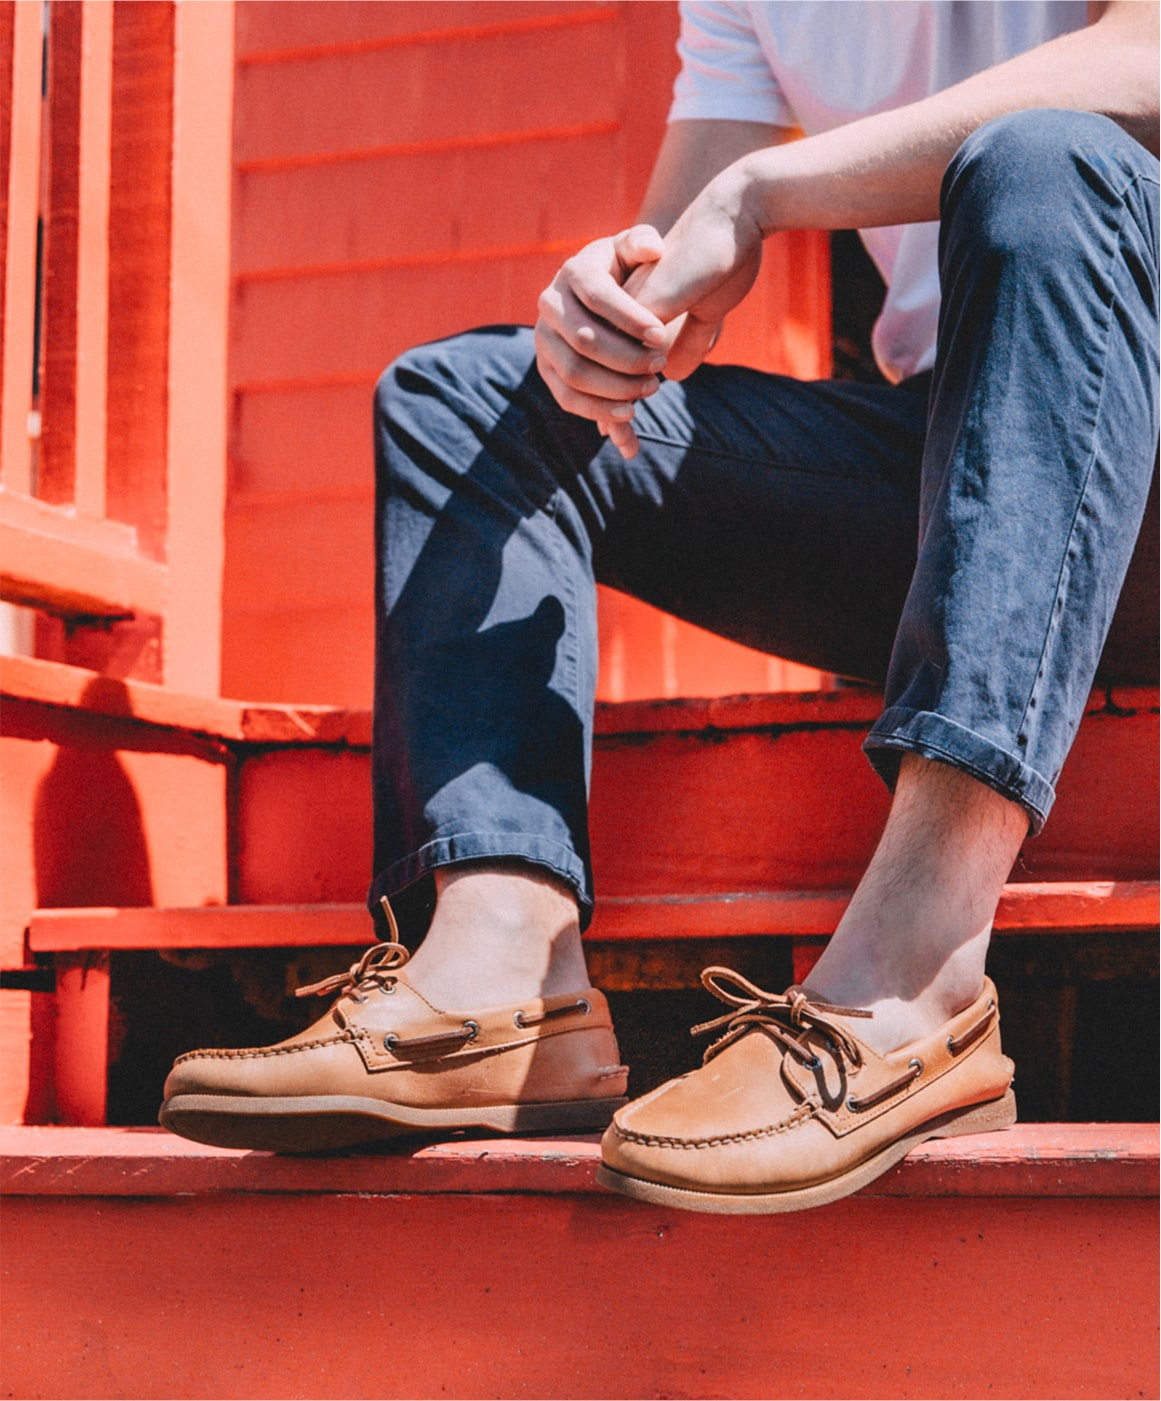 A man sitting on steps, wearing Sperry boat shoes.